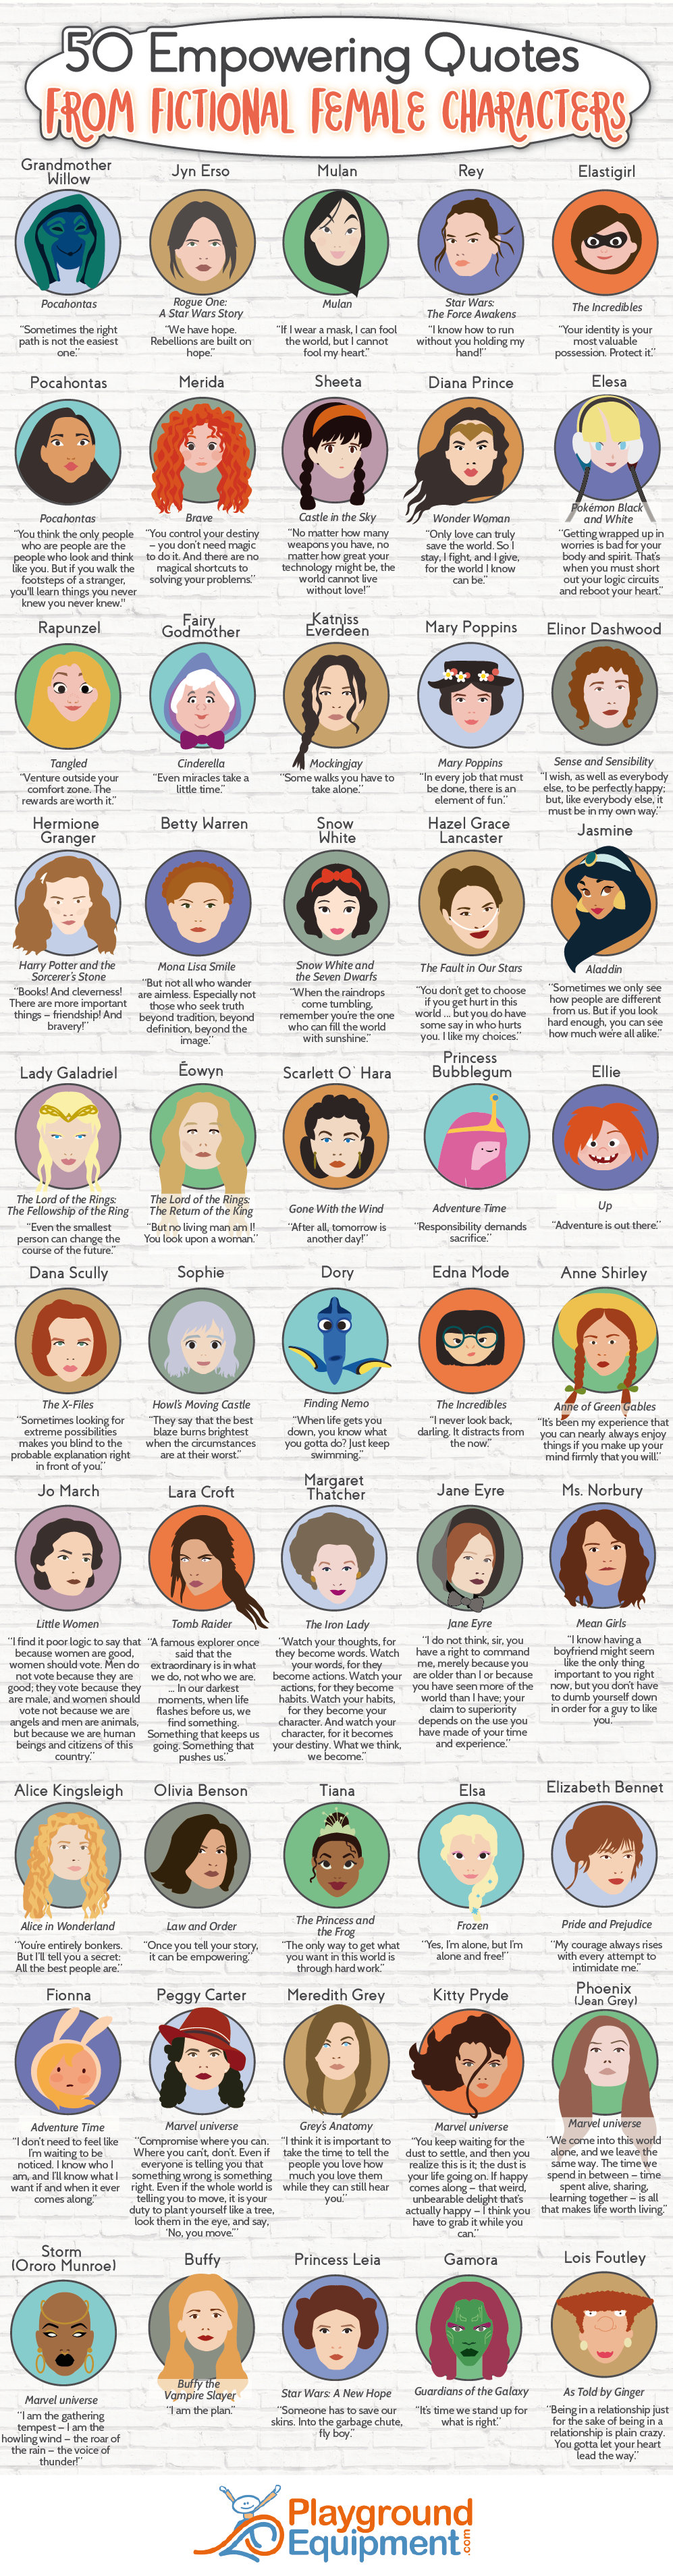 50 Empowering Quotes from Fictional Female Characters - PlaygroundEquipment.com - Infographic